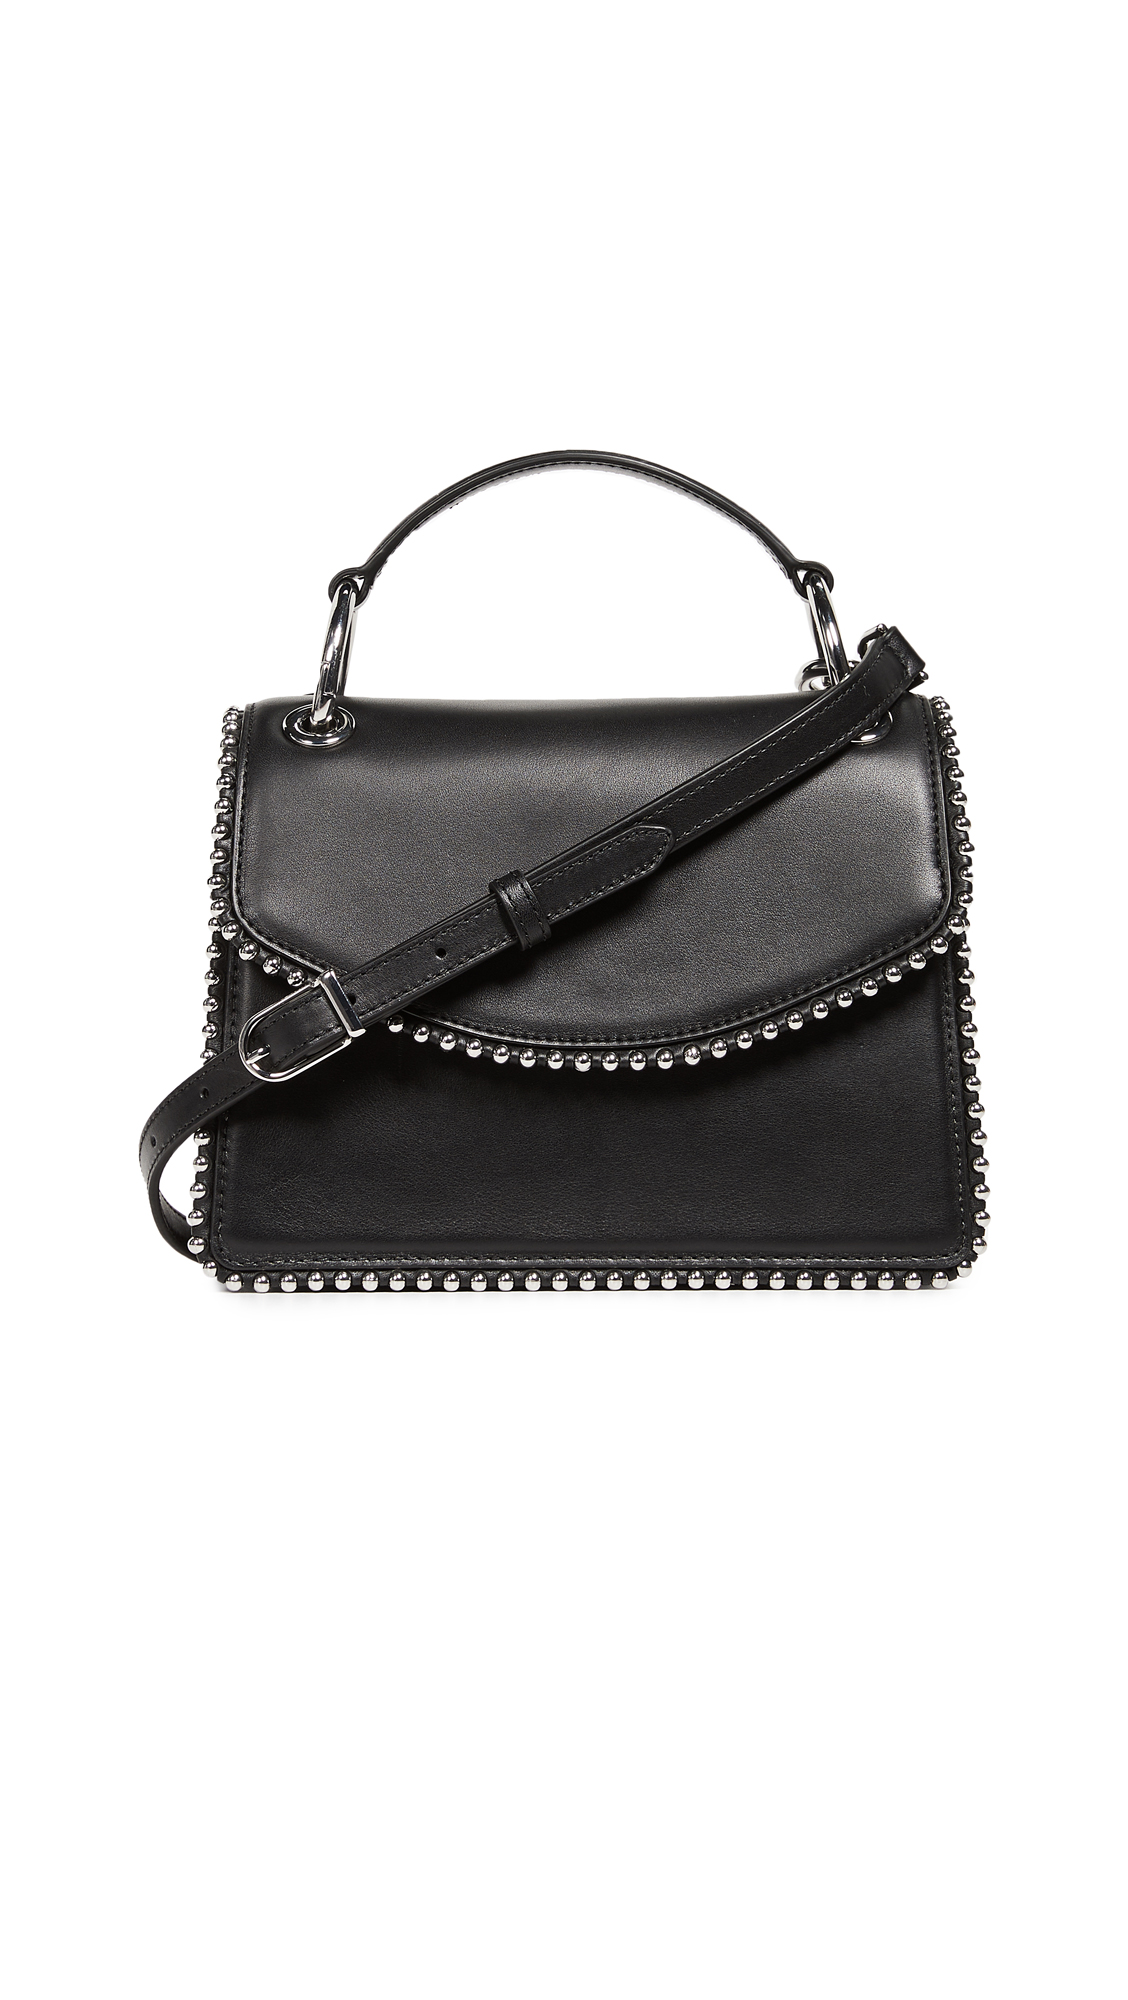 MERCER SATCHEL